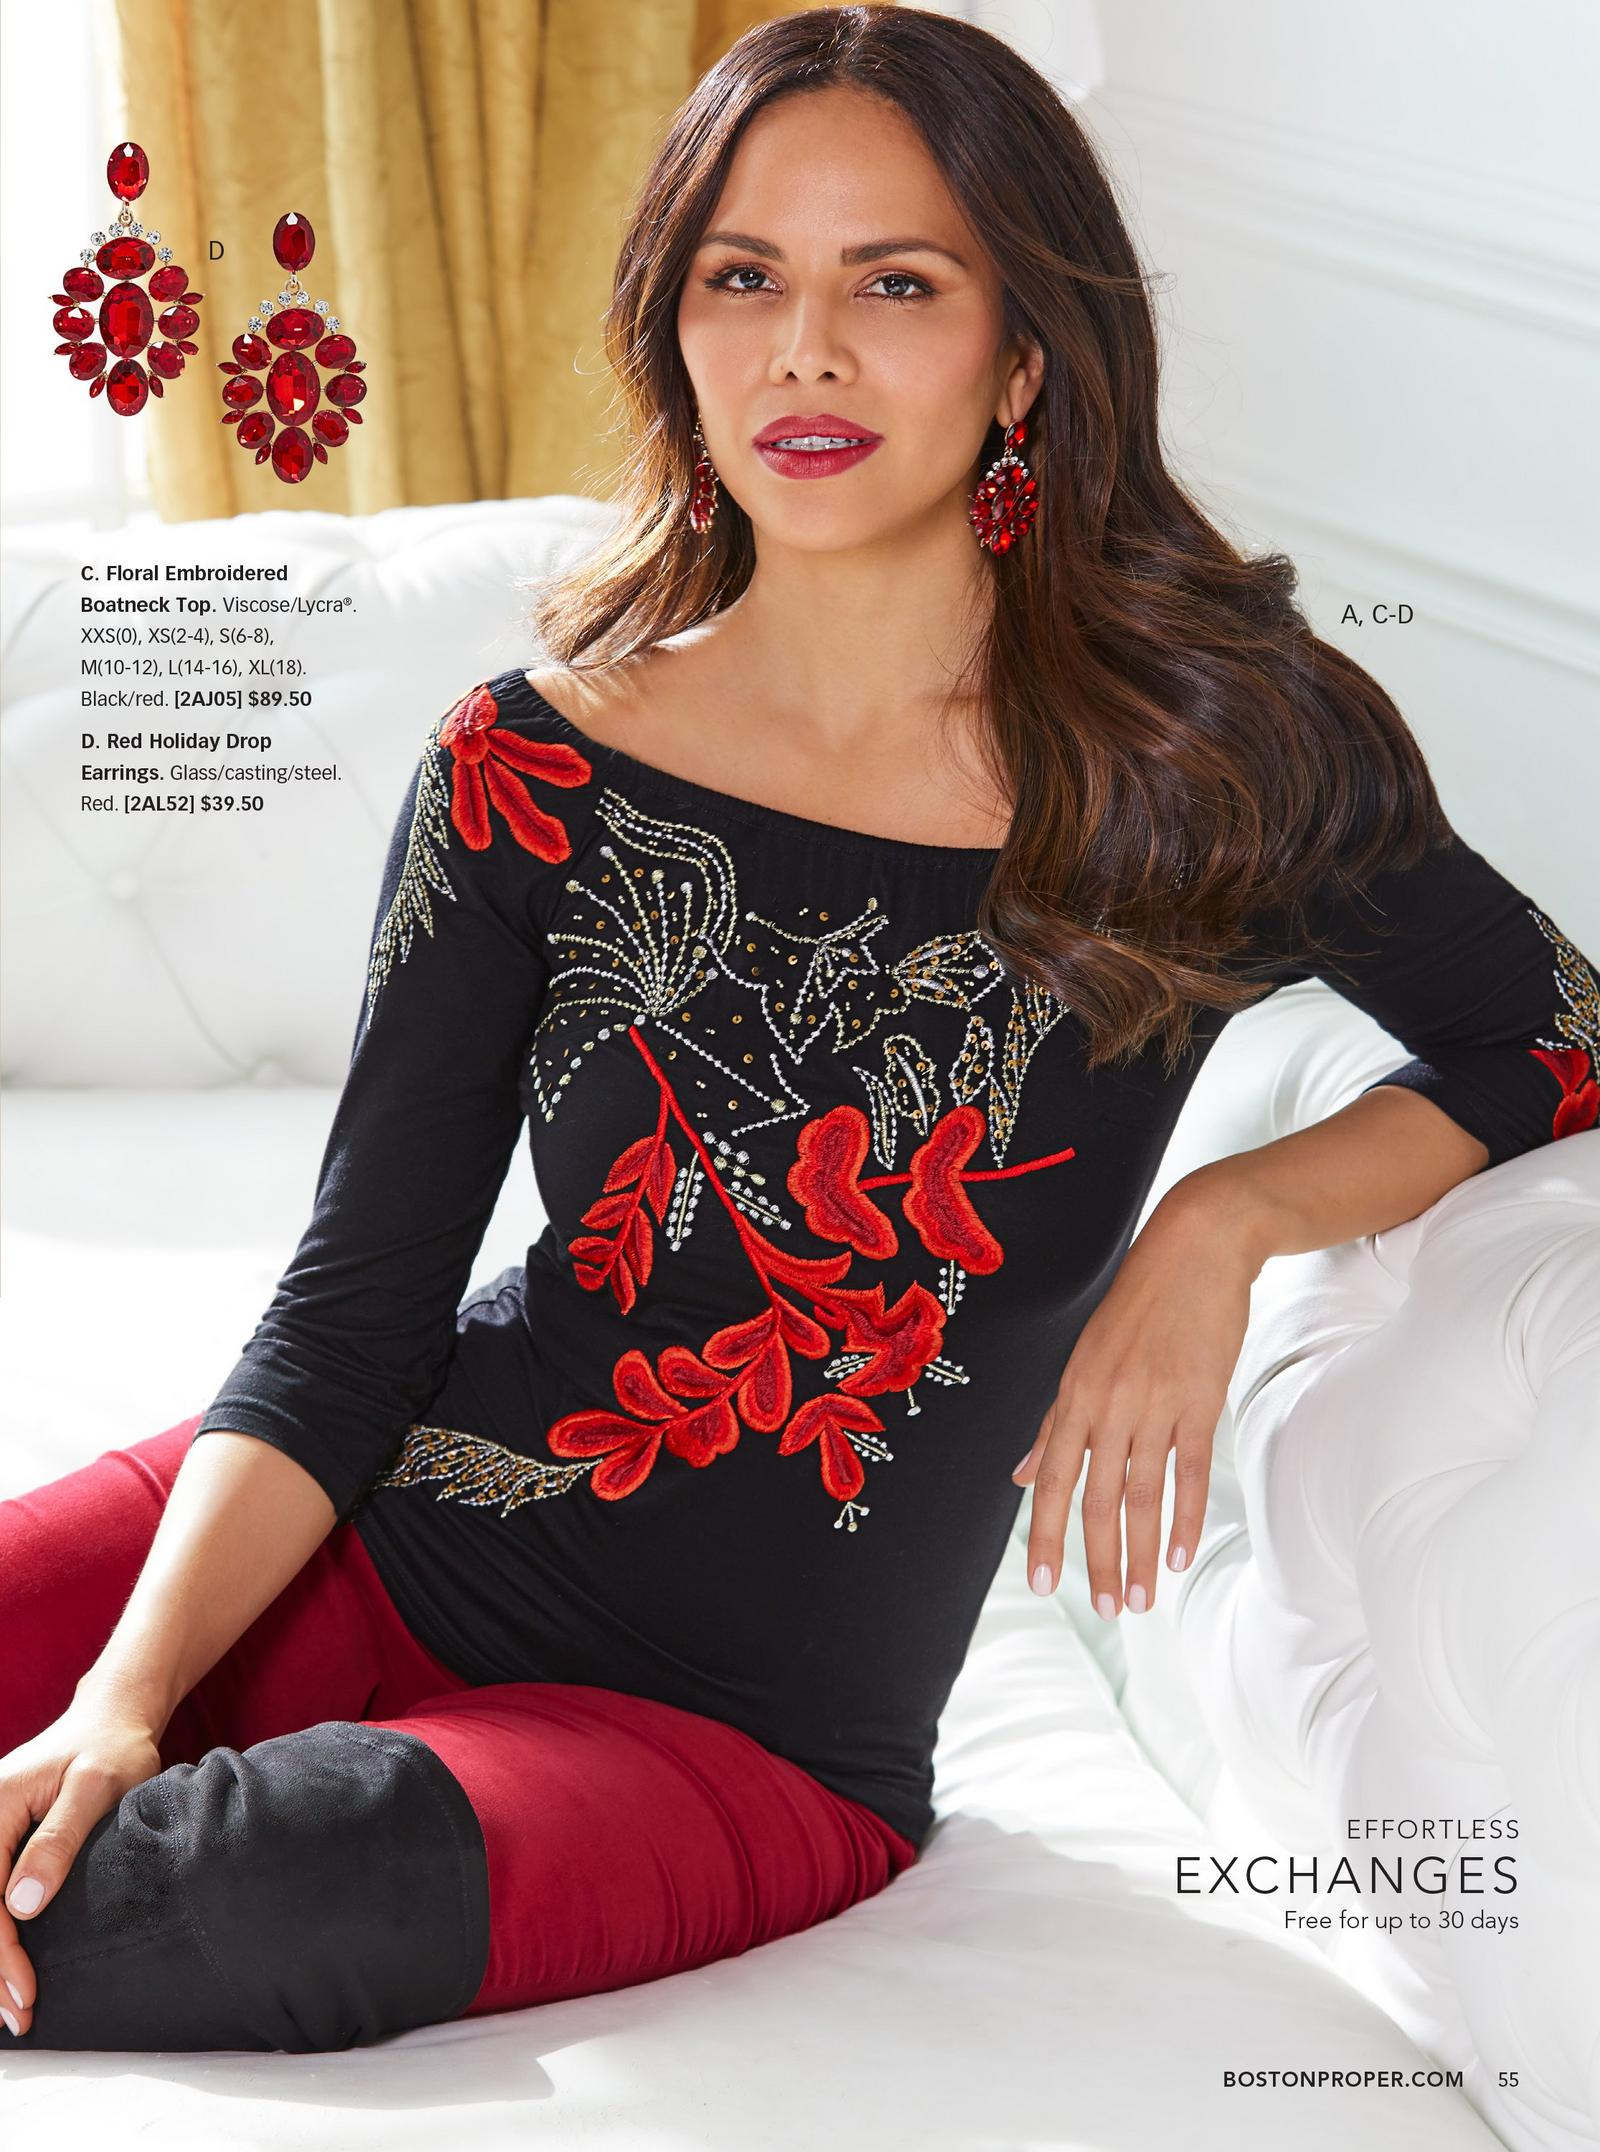 model wearing black and red floral embroidered boatneck top with red velvet pants, red earrings, and black over-the-knee boots.